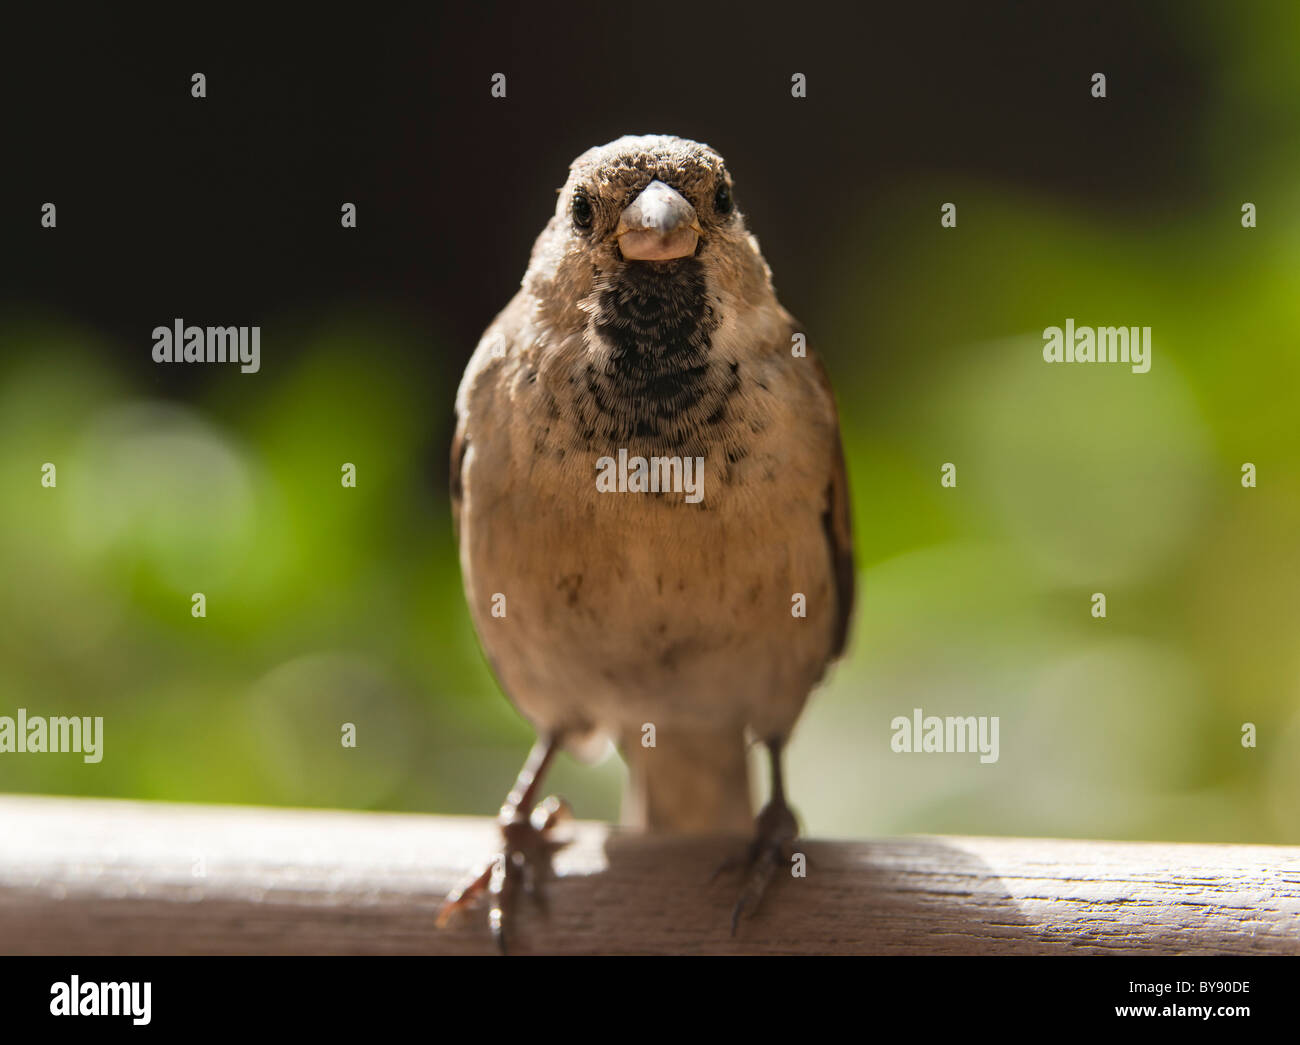 a male sparrow - Stock Image